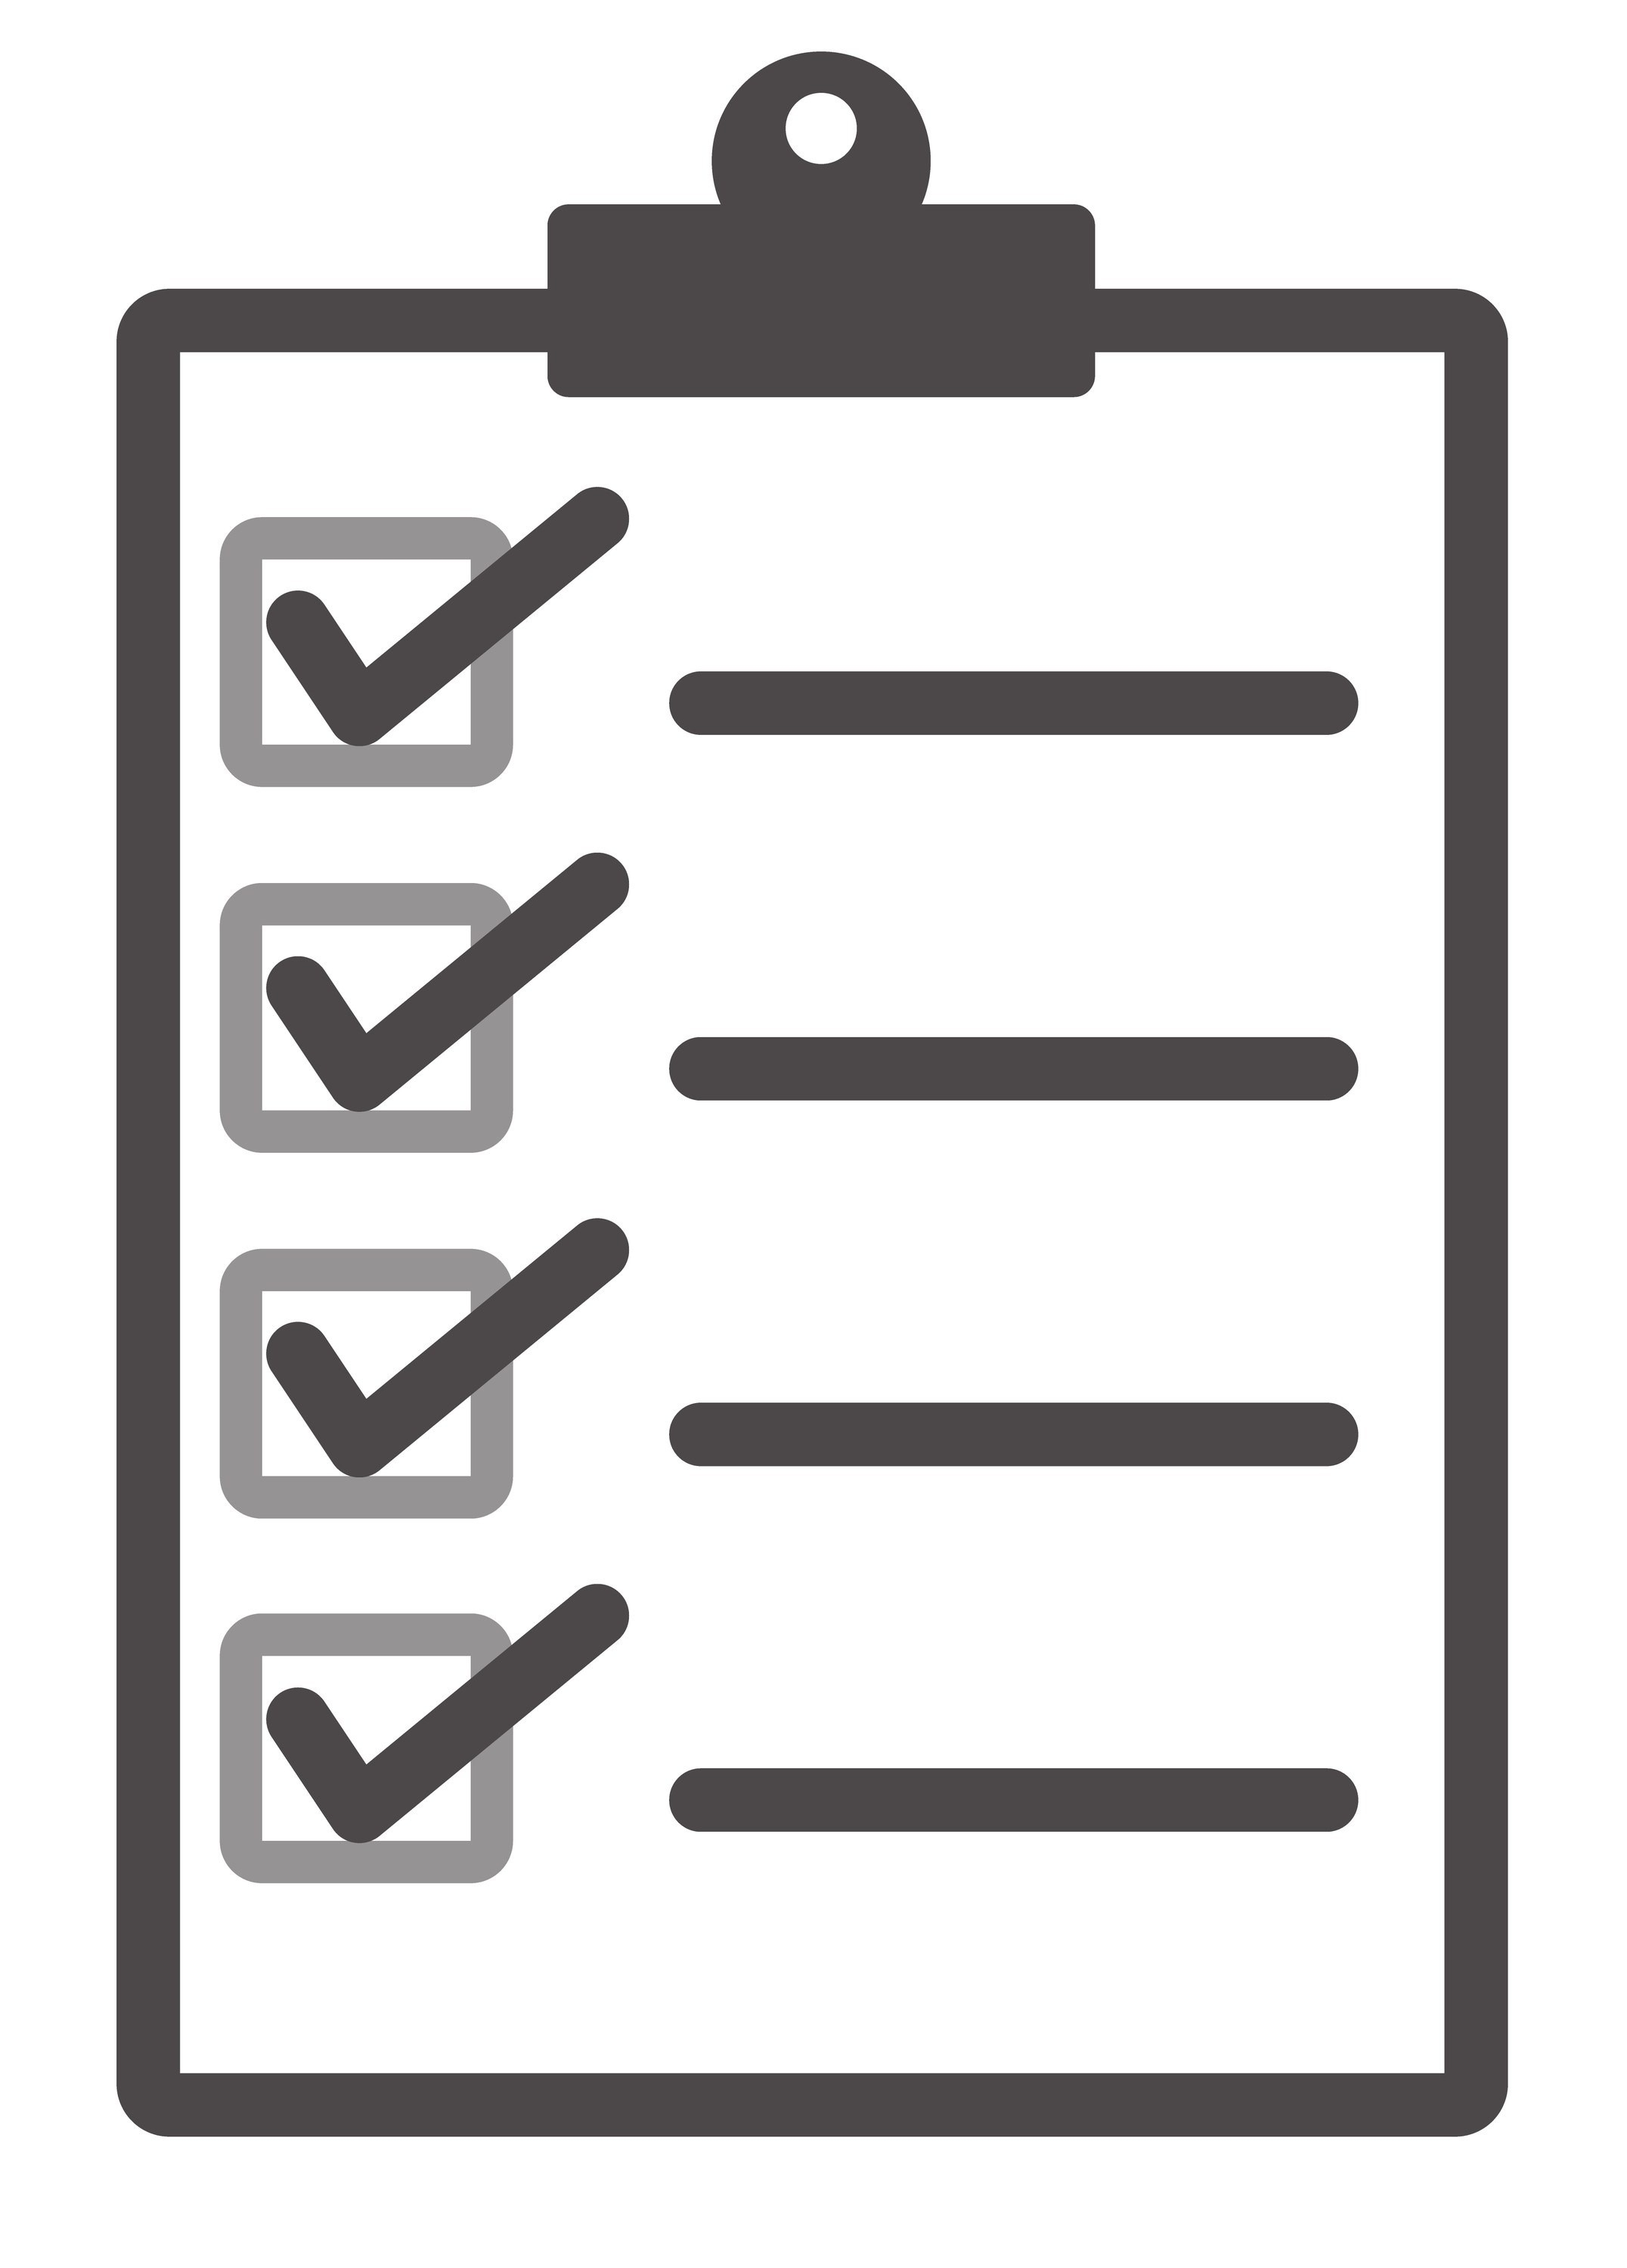 Checklist Vector | World Of Example intended for Checklist Vector 26183